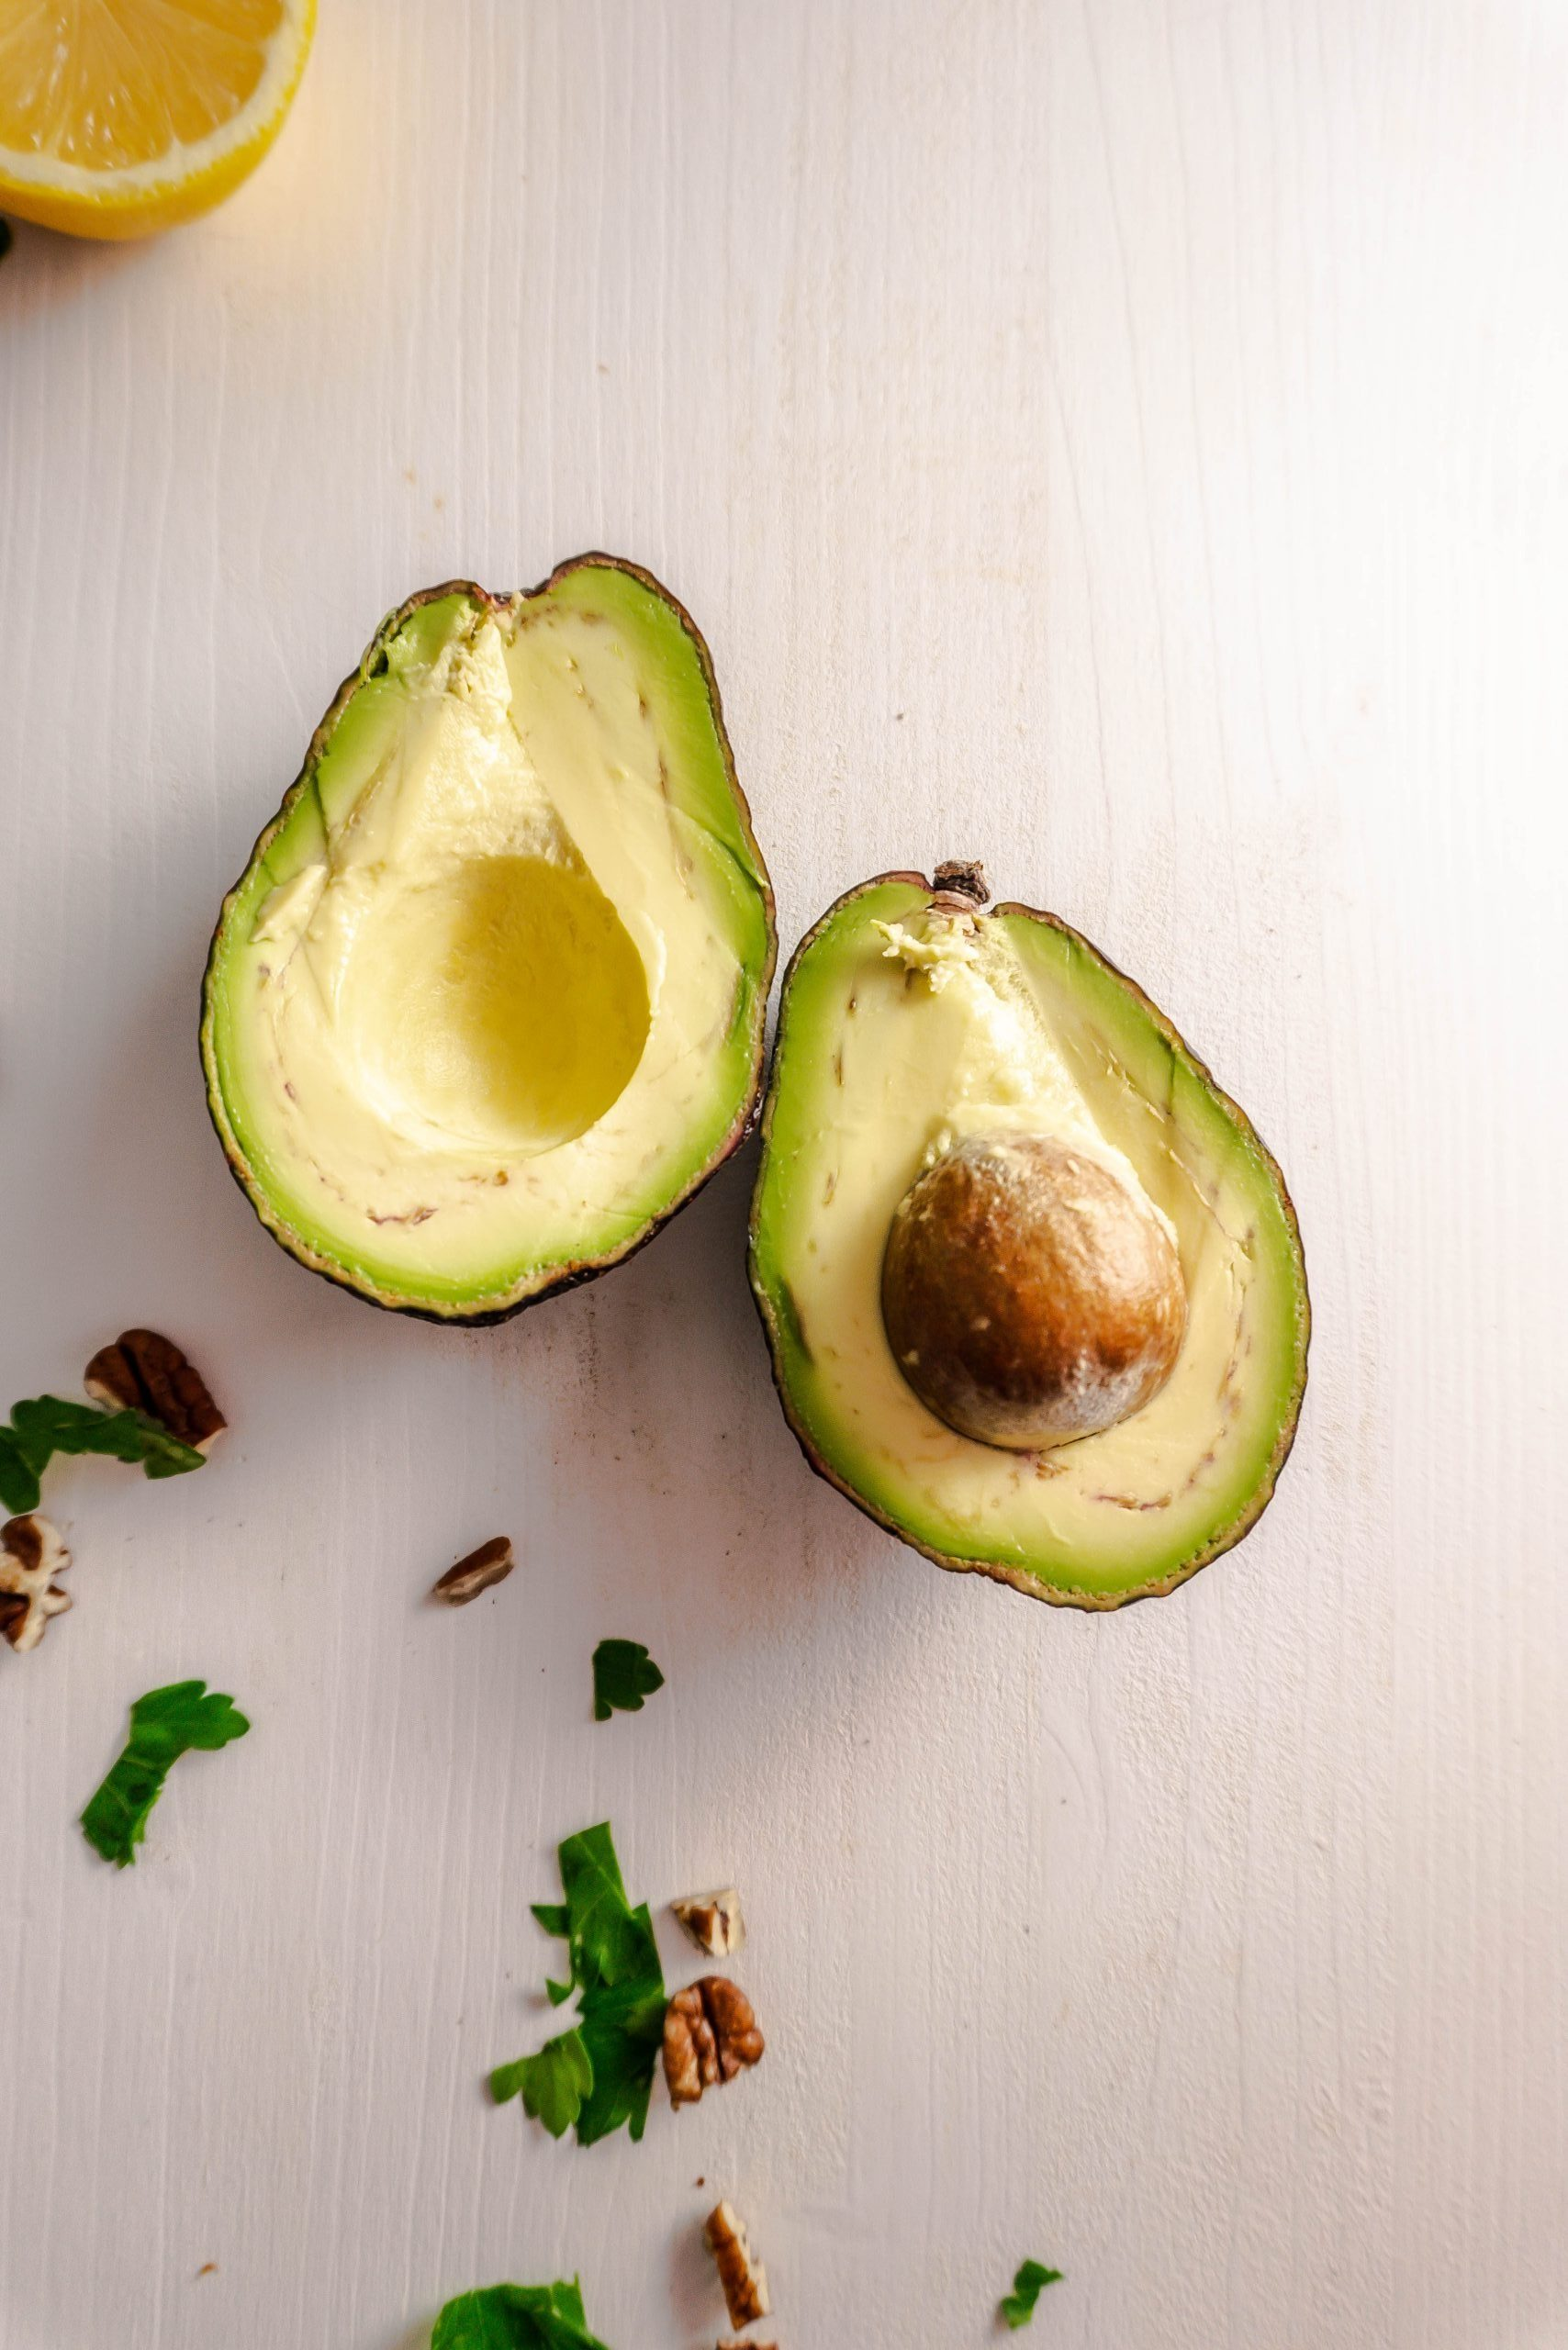 Two Avocados with chopped celery and pecans in the background photographed on a white surface